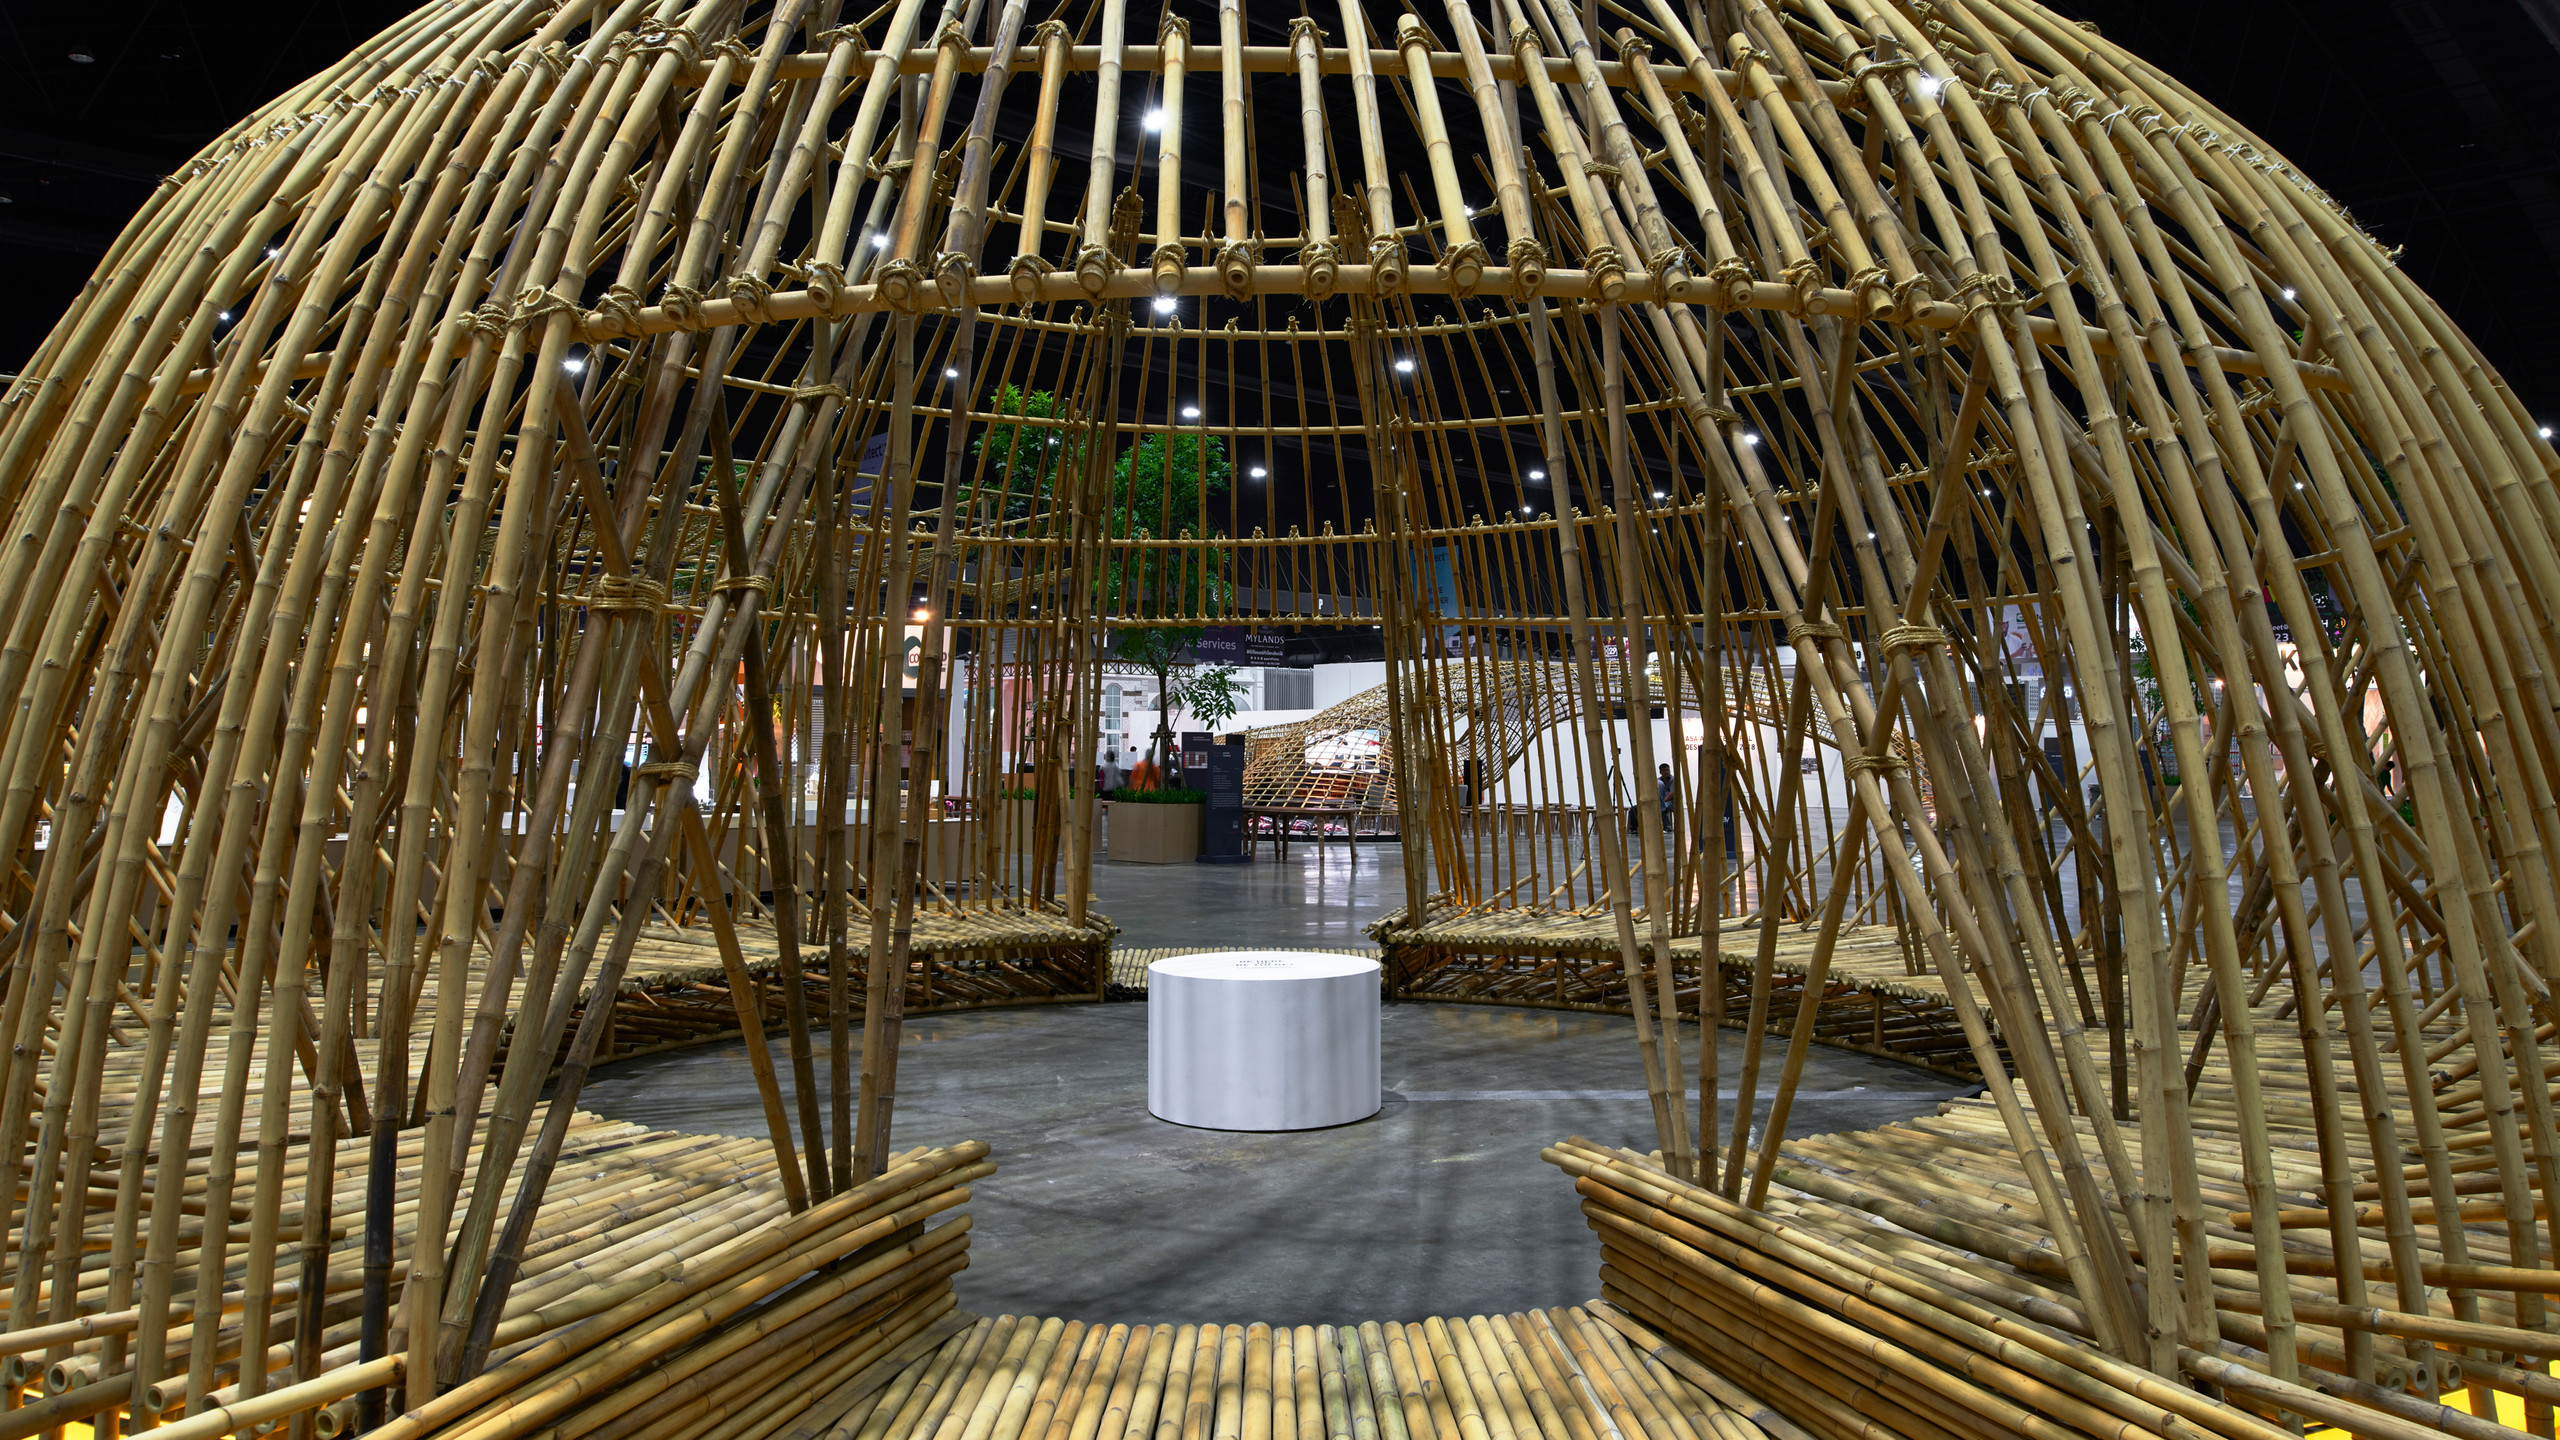 Meeting Space Pavilion